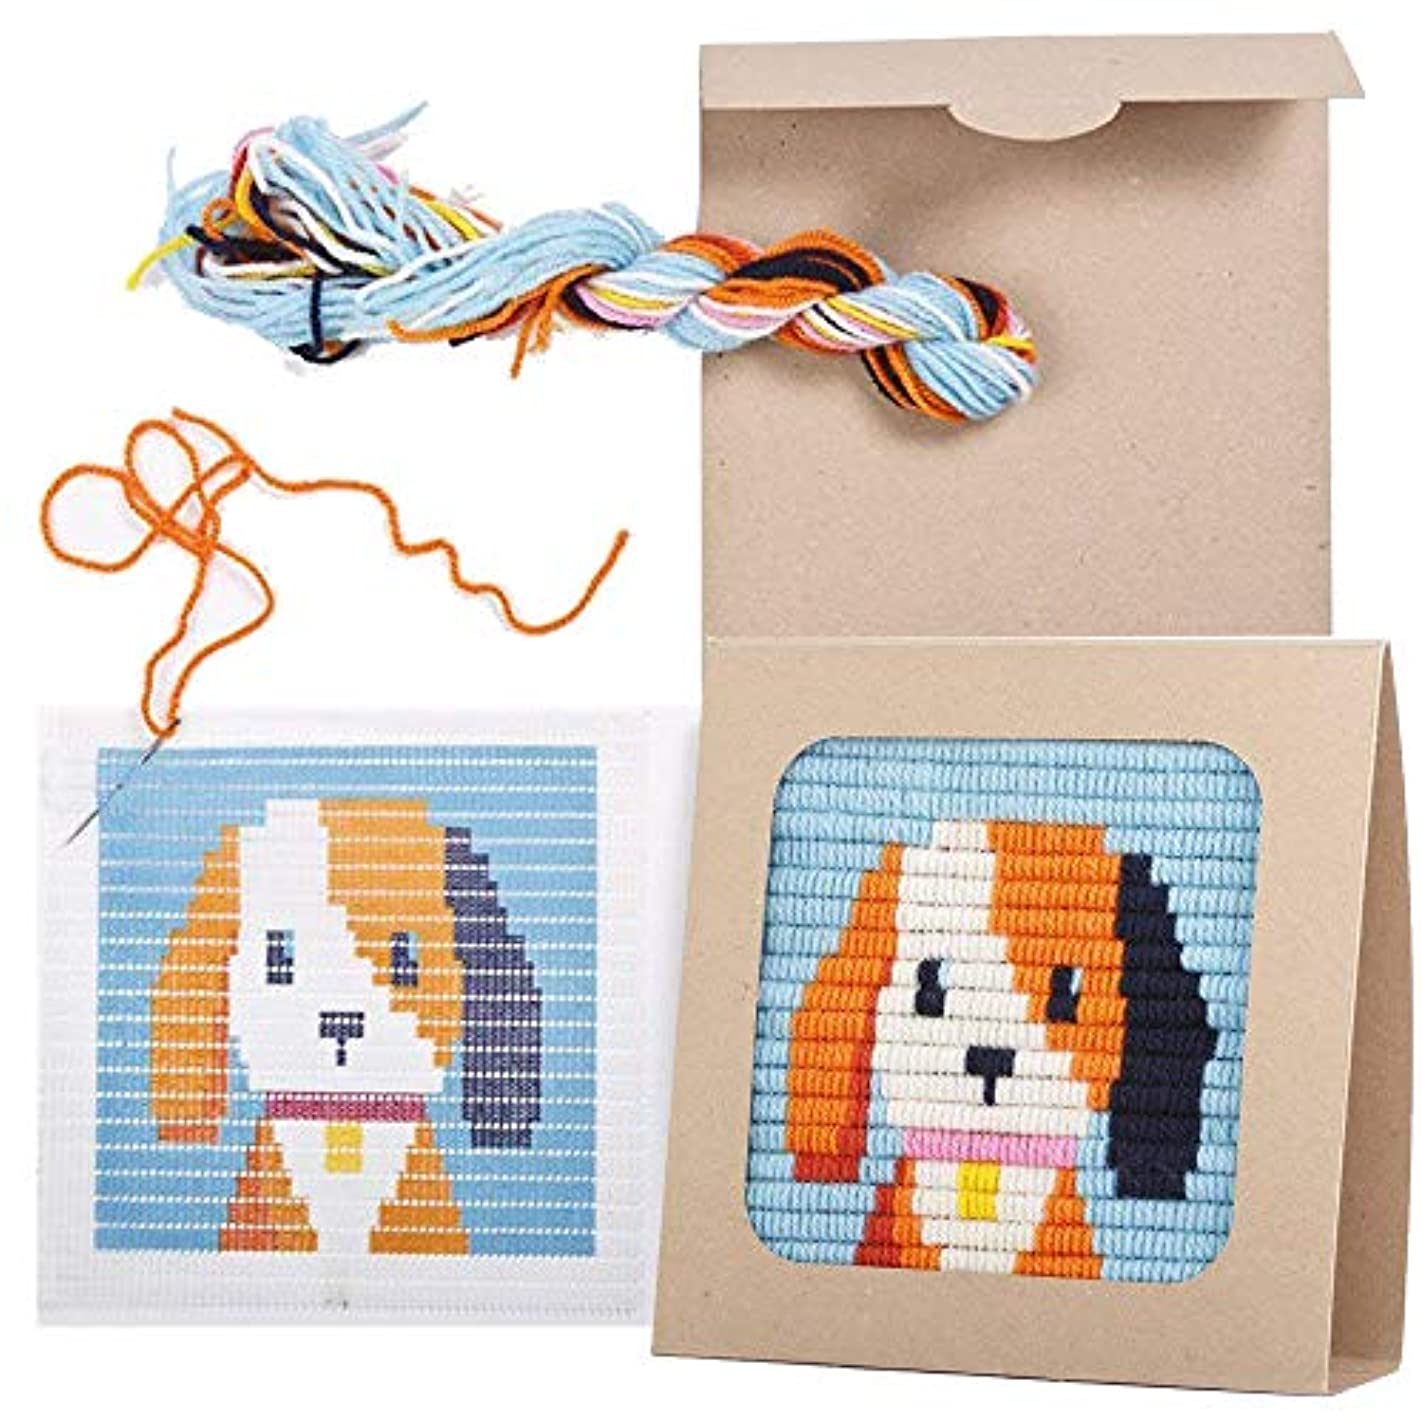 """Sozo - Colorful DIY Needlepoint Embroidery Craft Kit for Beginners. Eco Friendly Package That Turns into a Display Frame, Easier Than Cross Stitch. Size - 8"""" x 8"""" (Puppy)"""